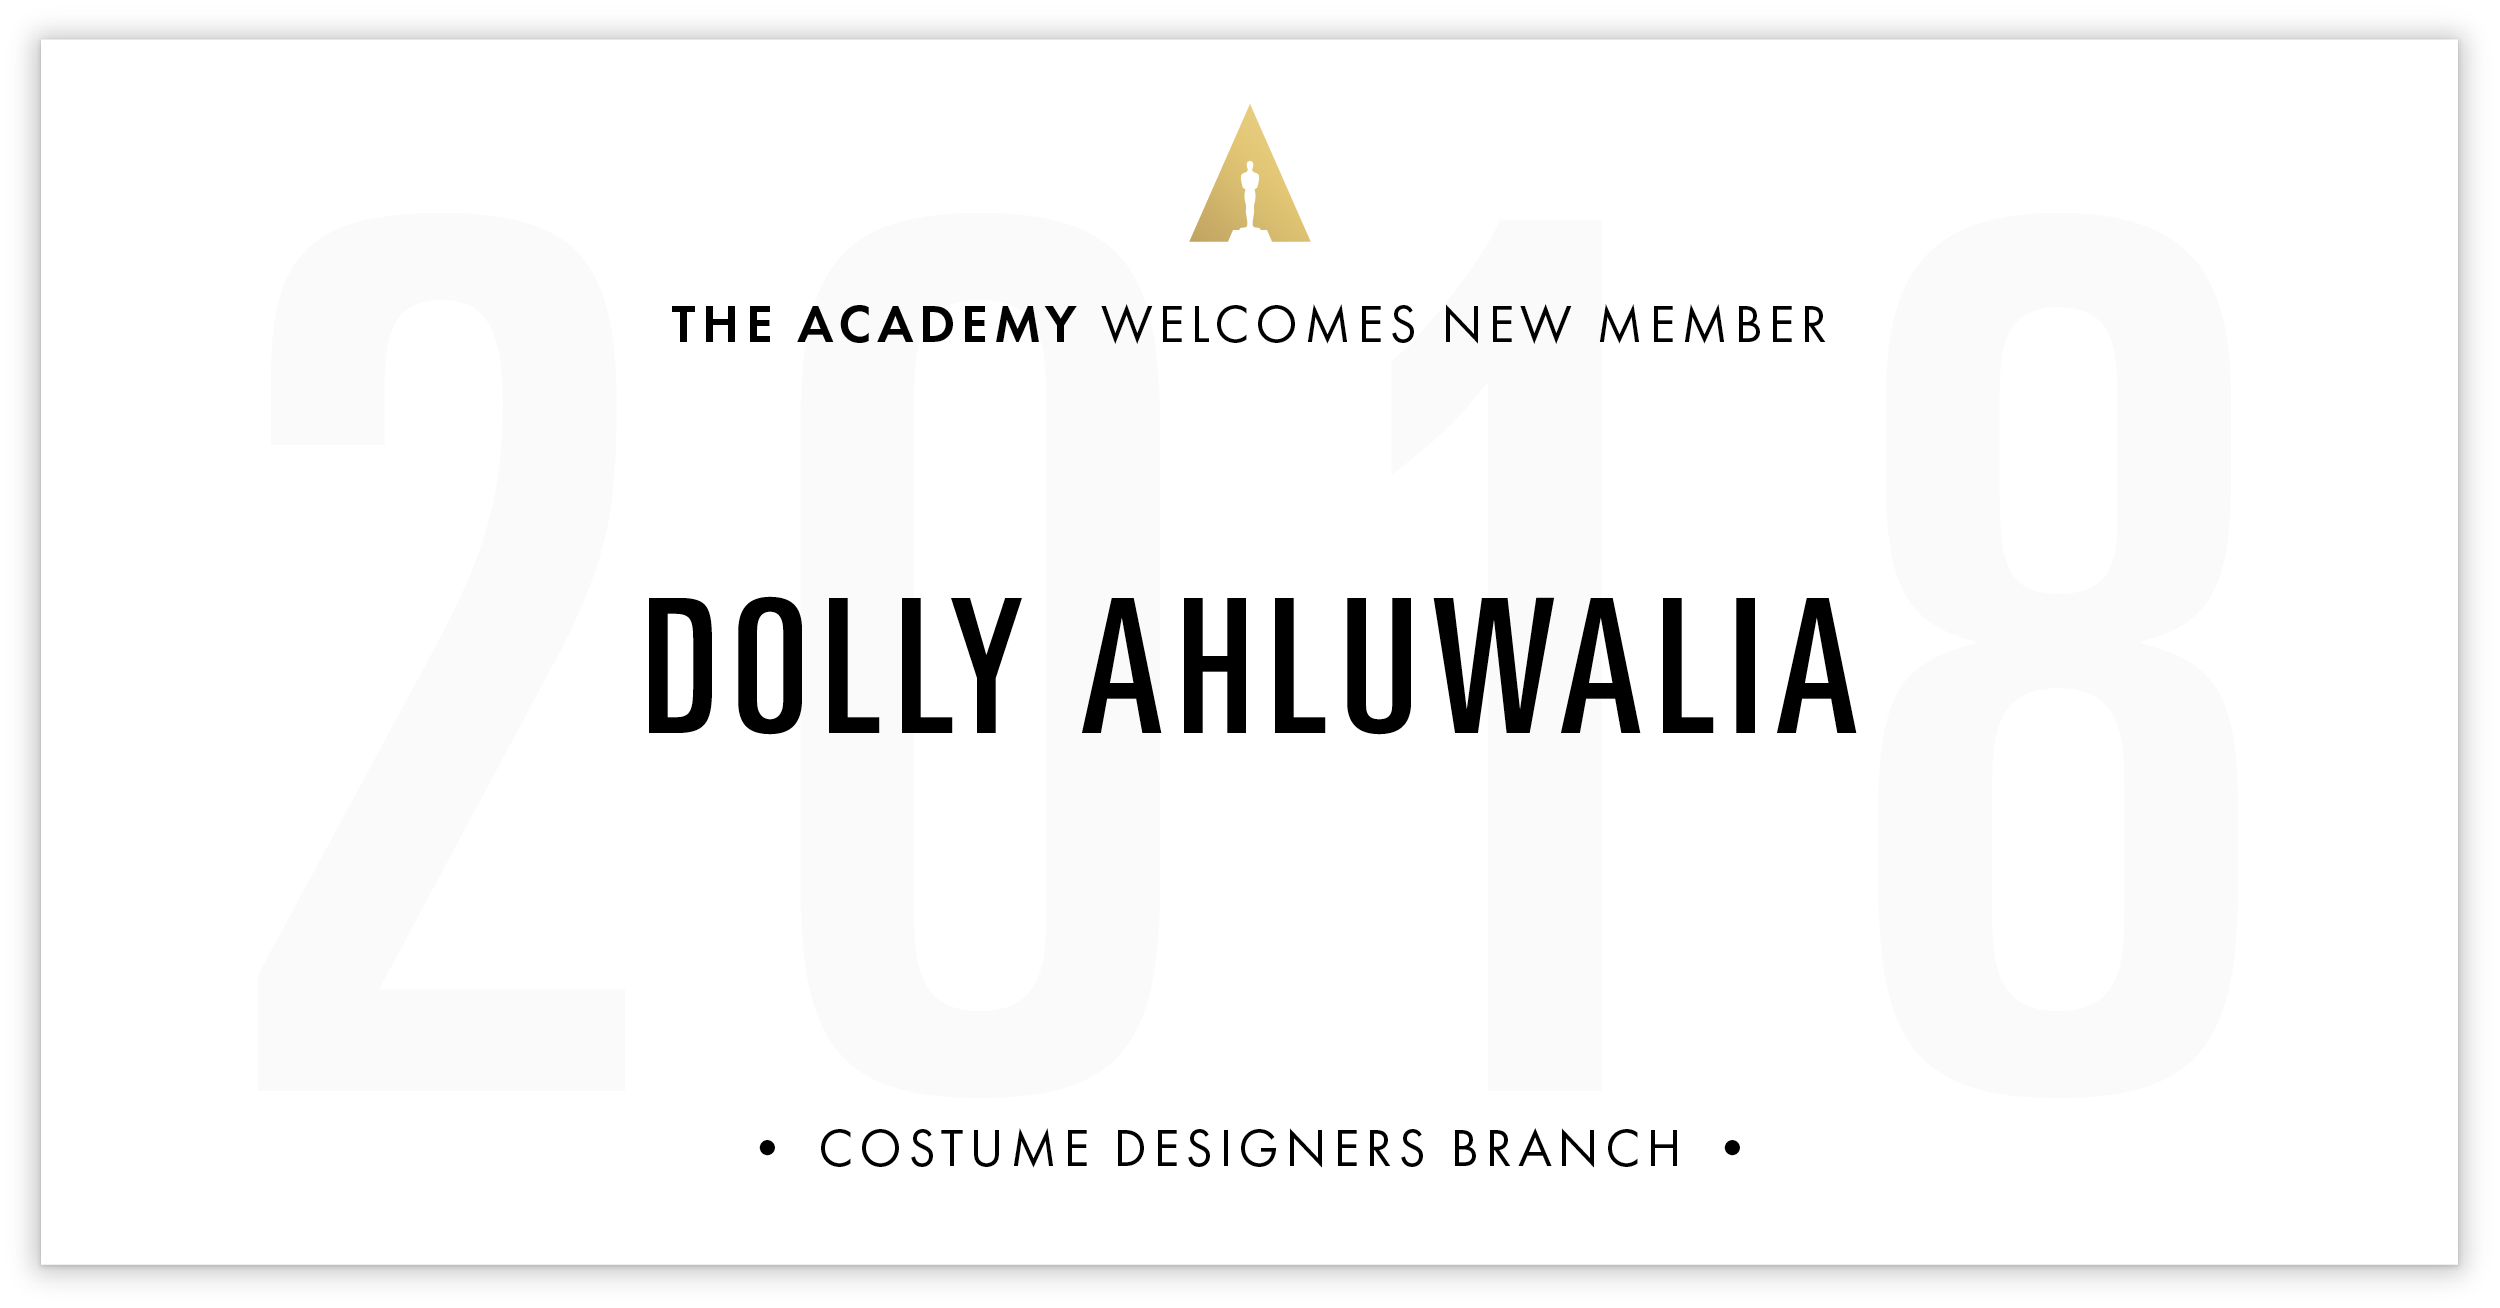 Dolly Ahluwalia is invited!